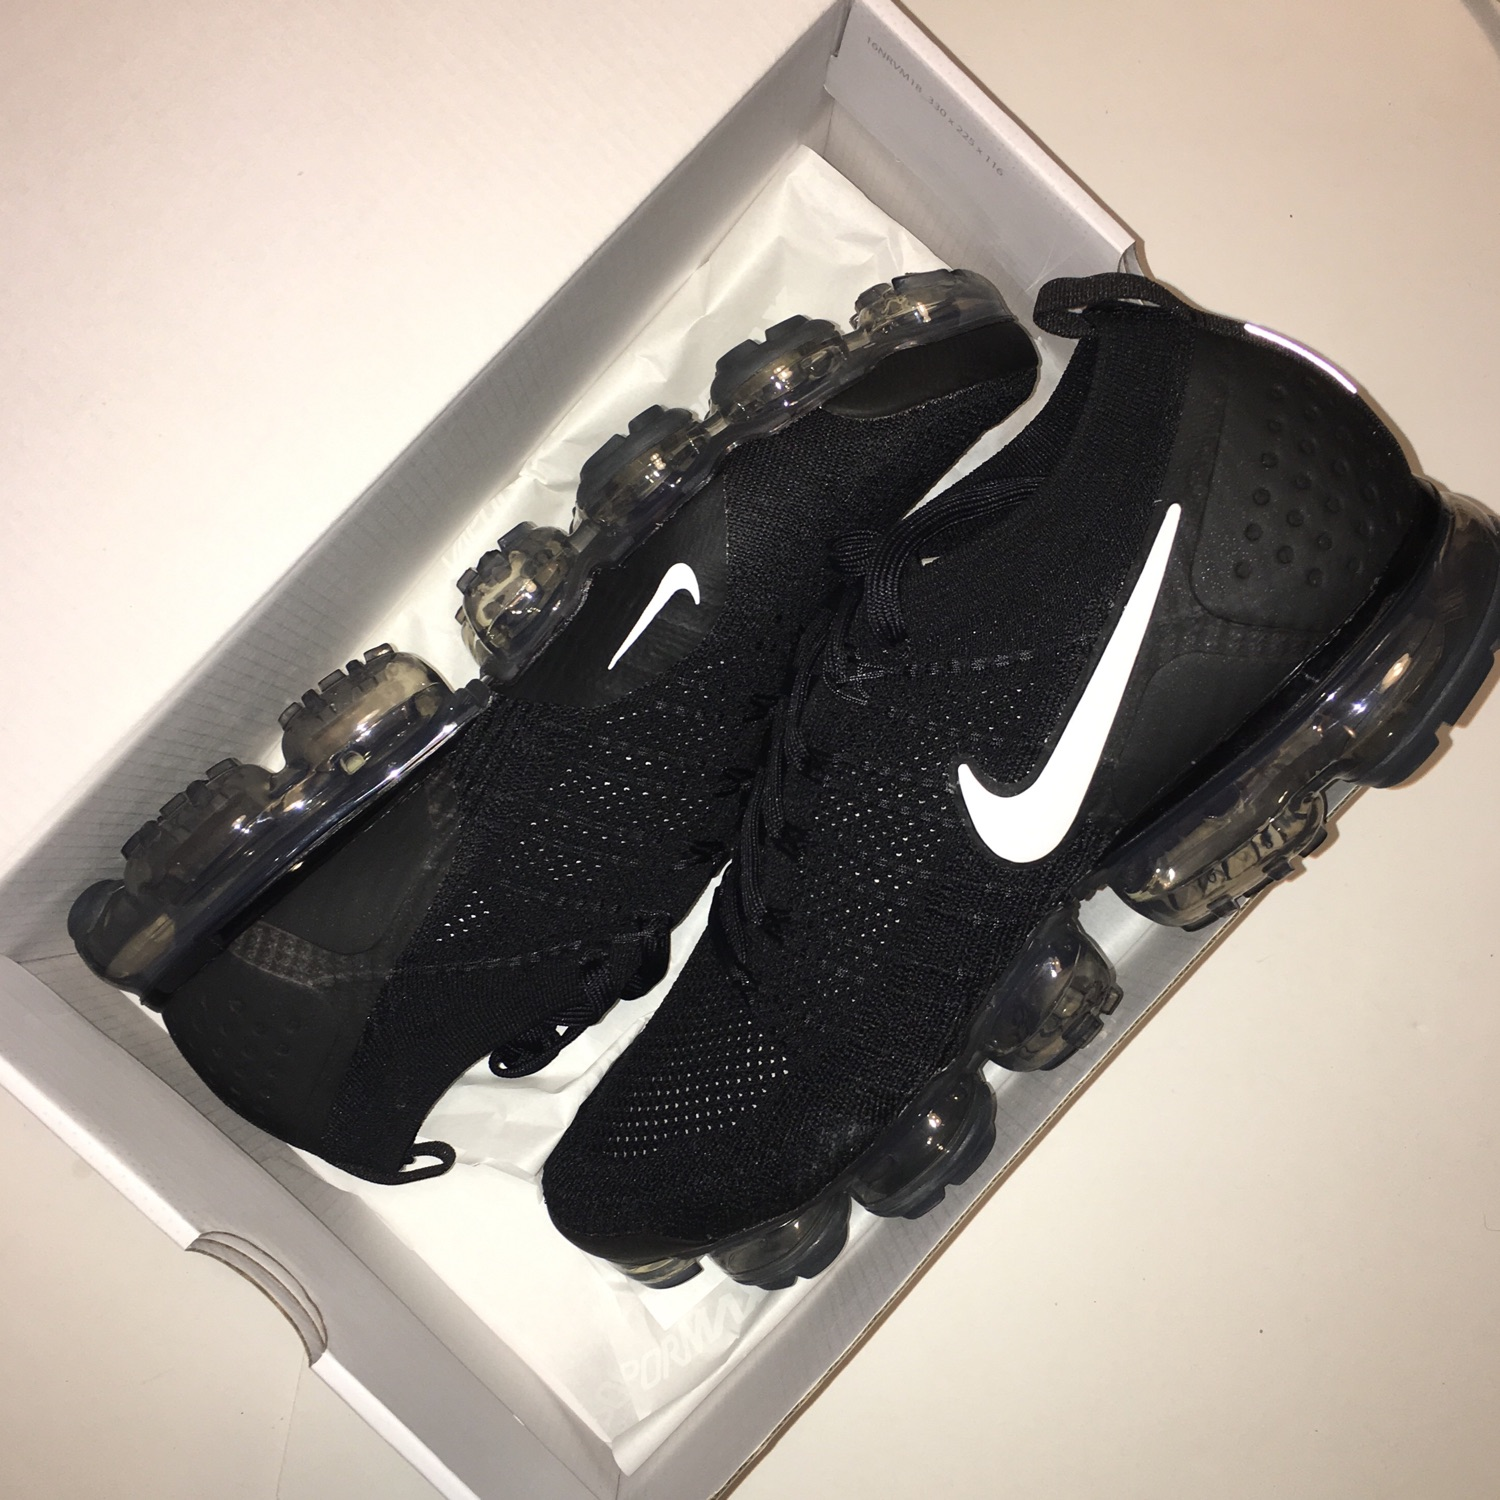 vapormax flyknit 2 black and white